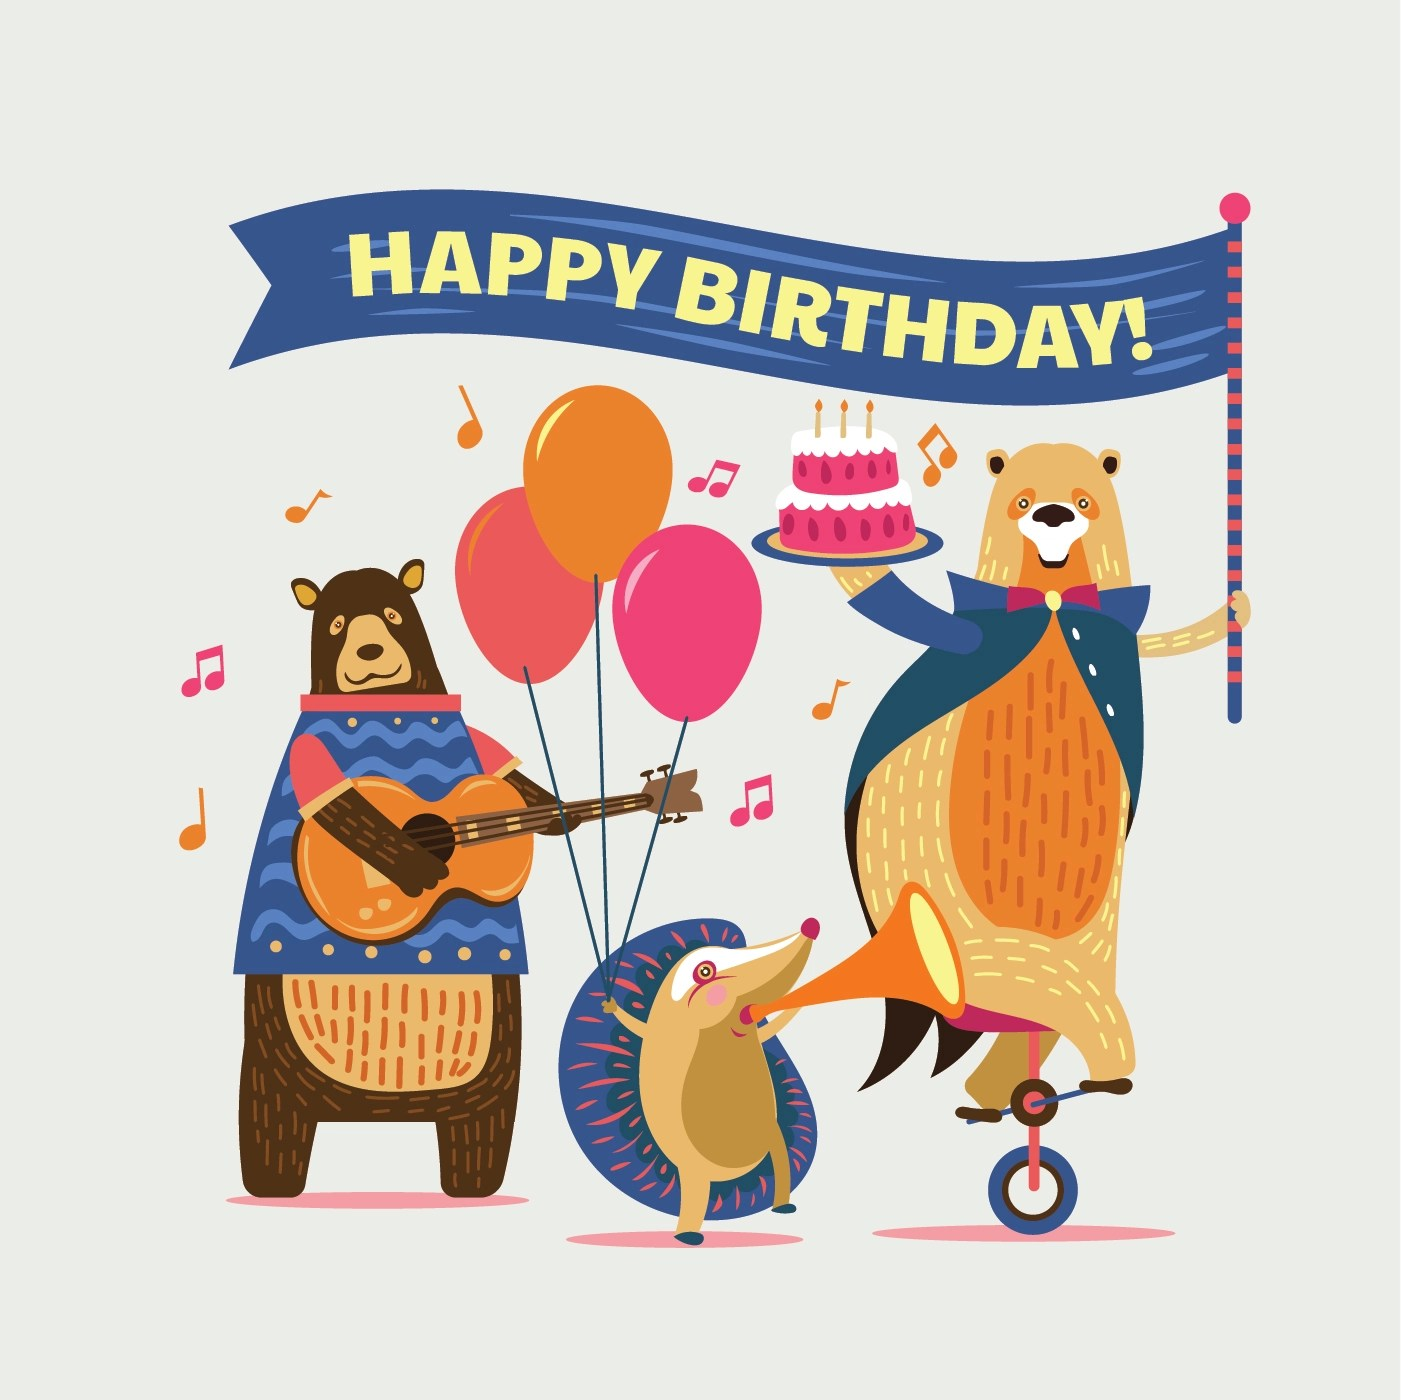 Cute Cartoon Animals Illustration For Kids Happy Birthday